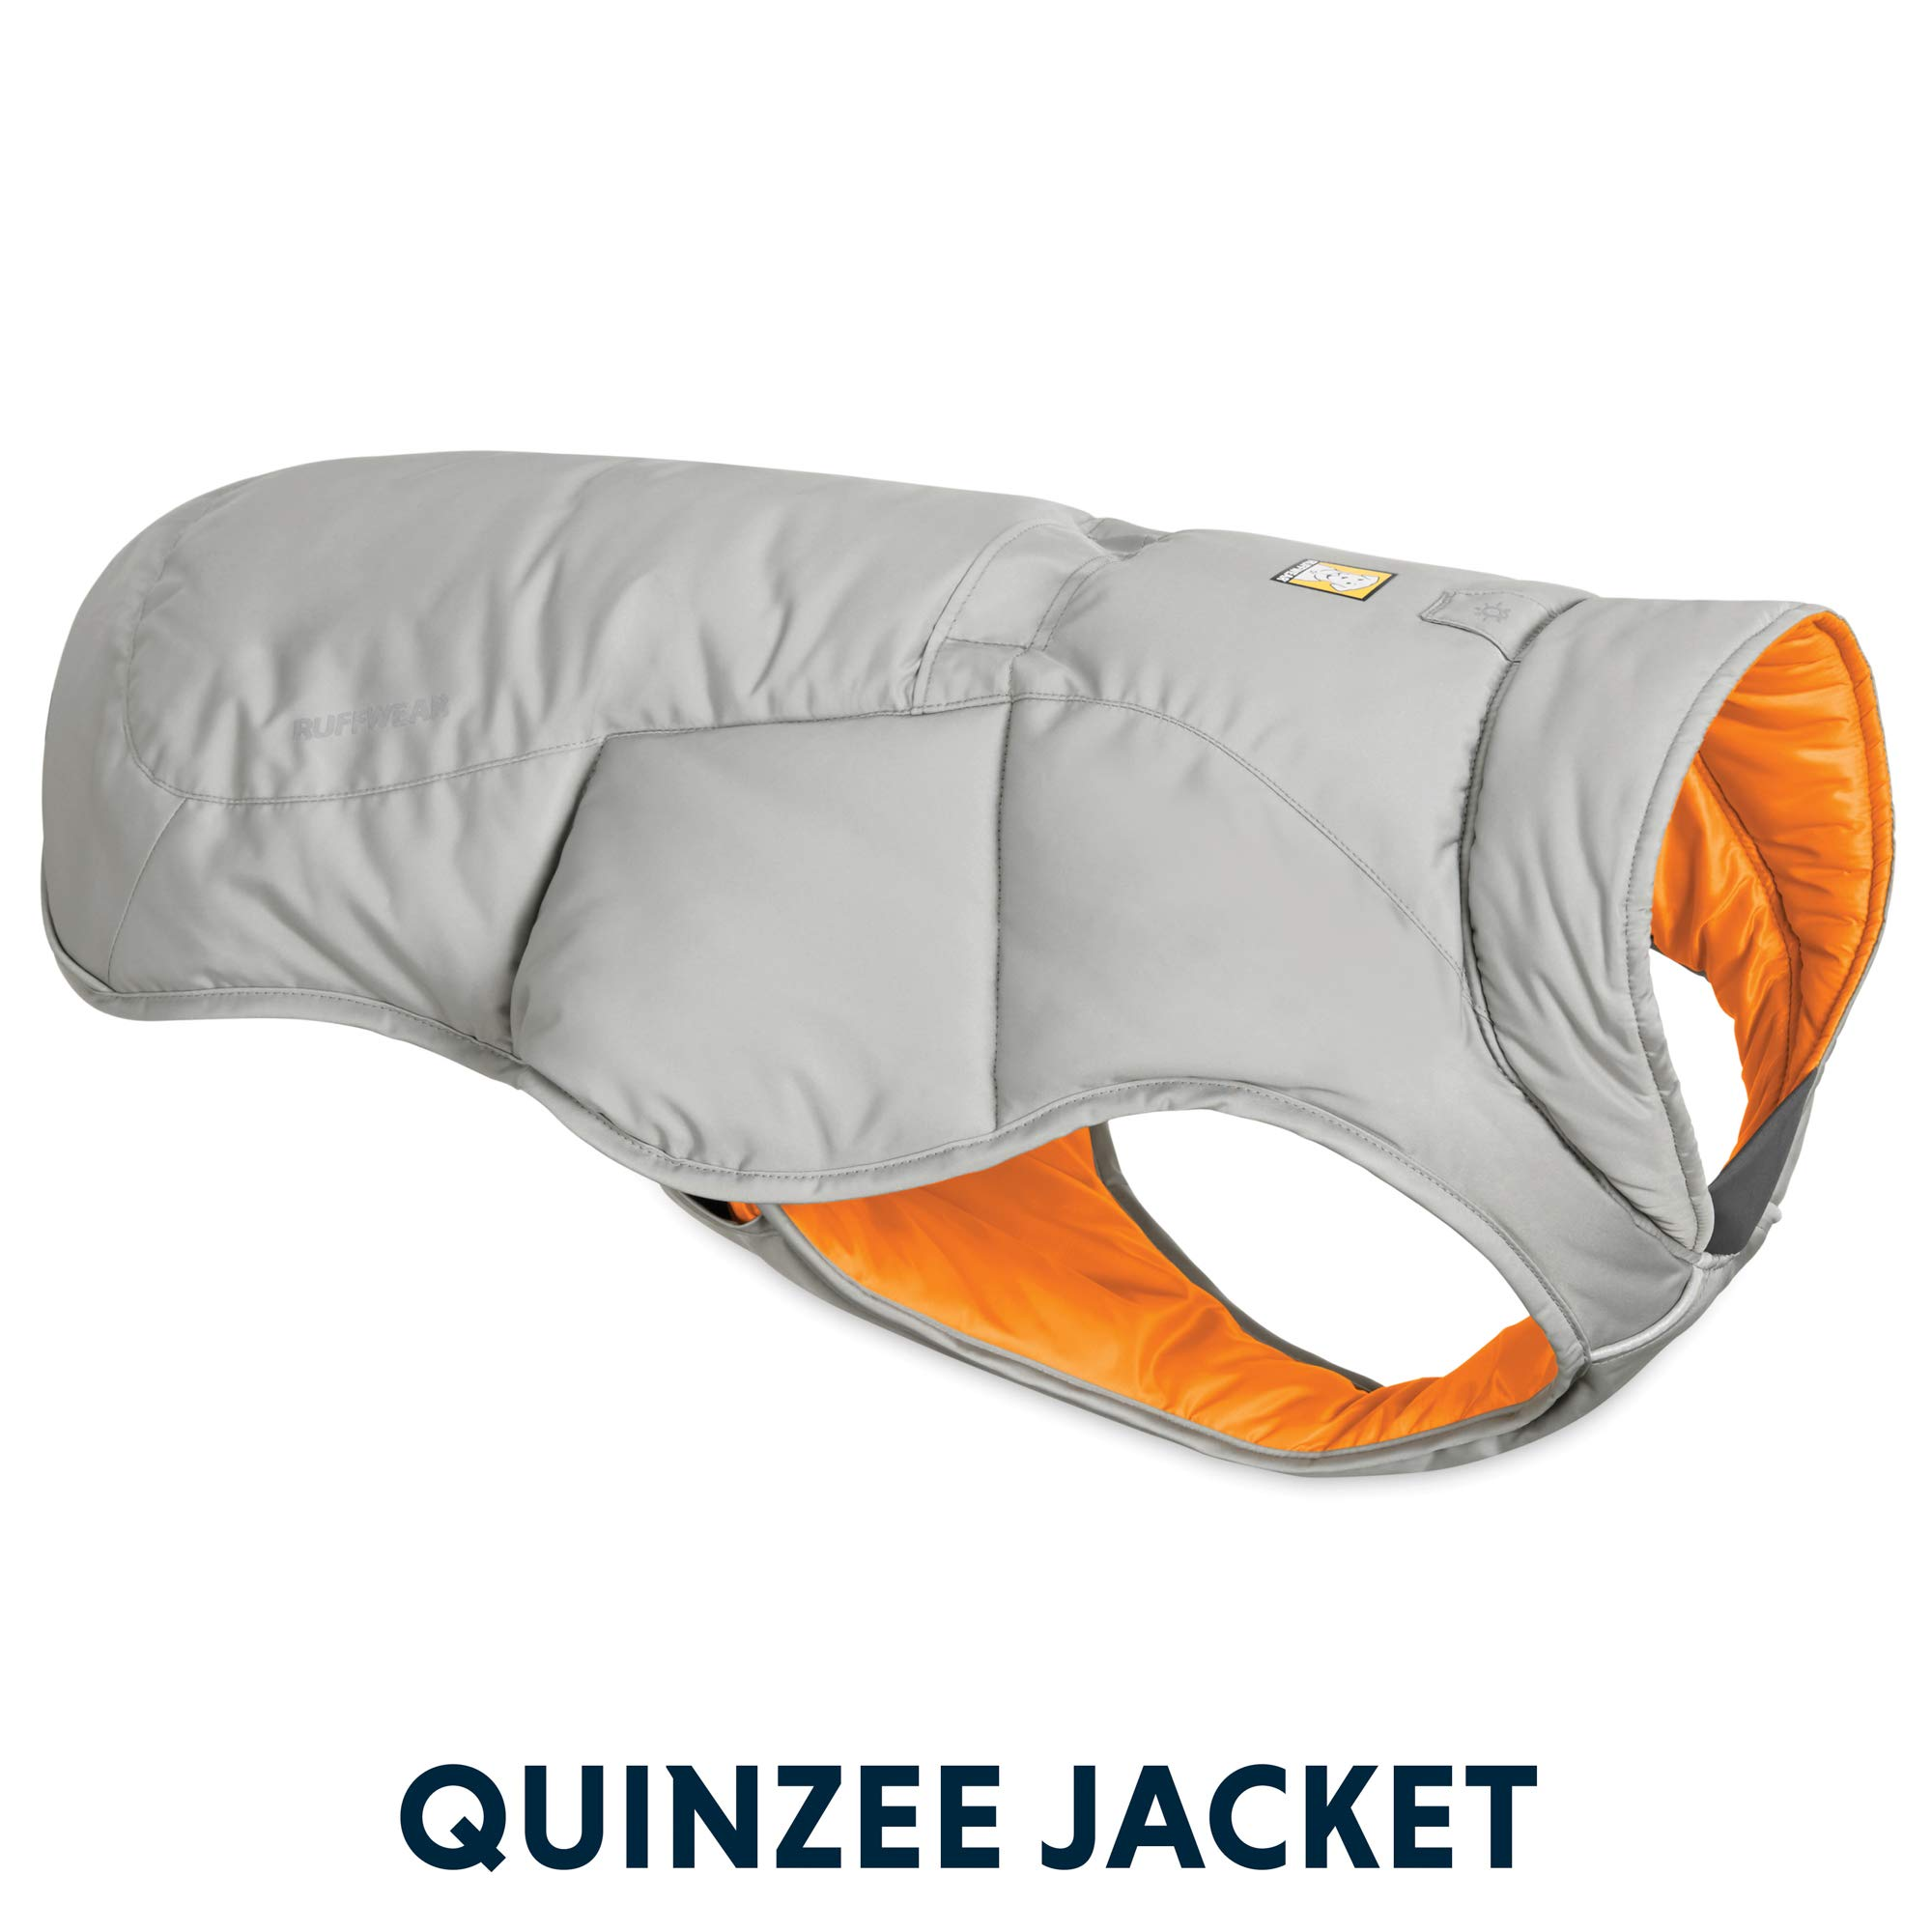 RUFFWEAR - Quinzee Insulated, Water Resistant Jacket for Dogs with Stuff Sack, Cloudburst Gray, XX-Small